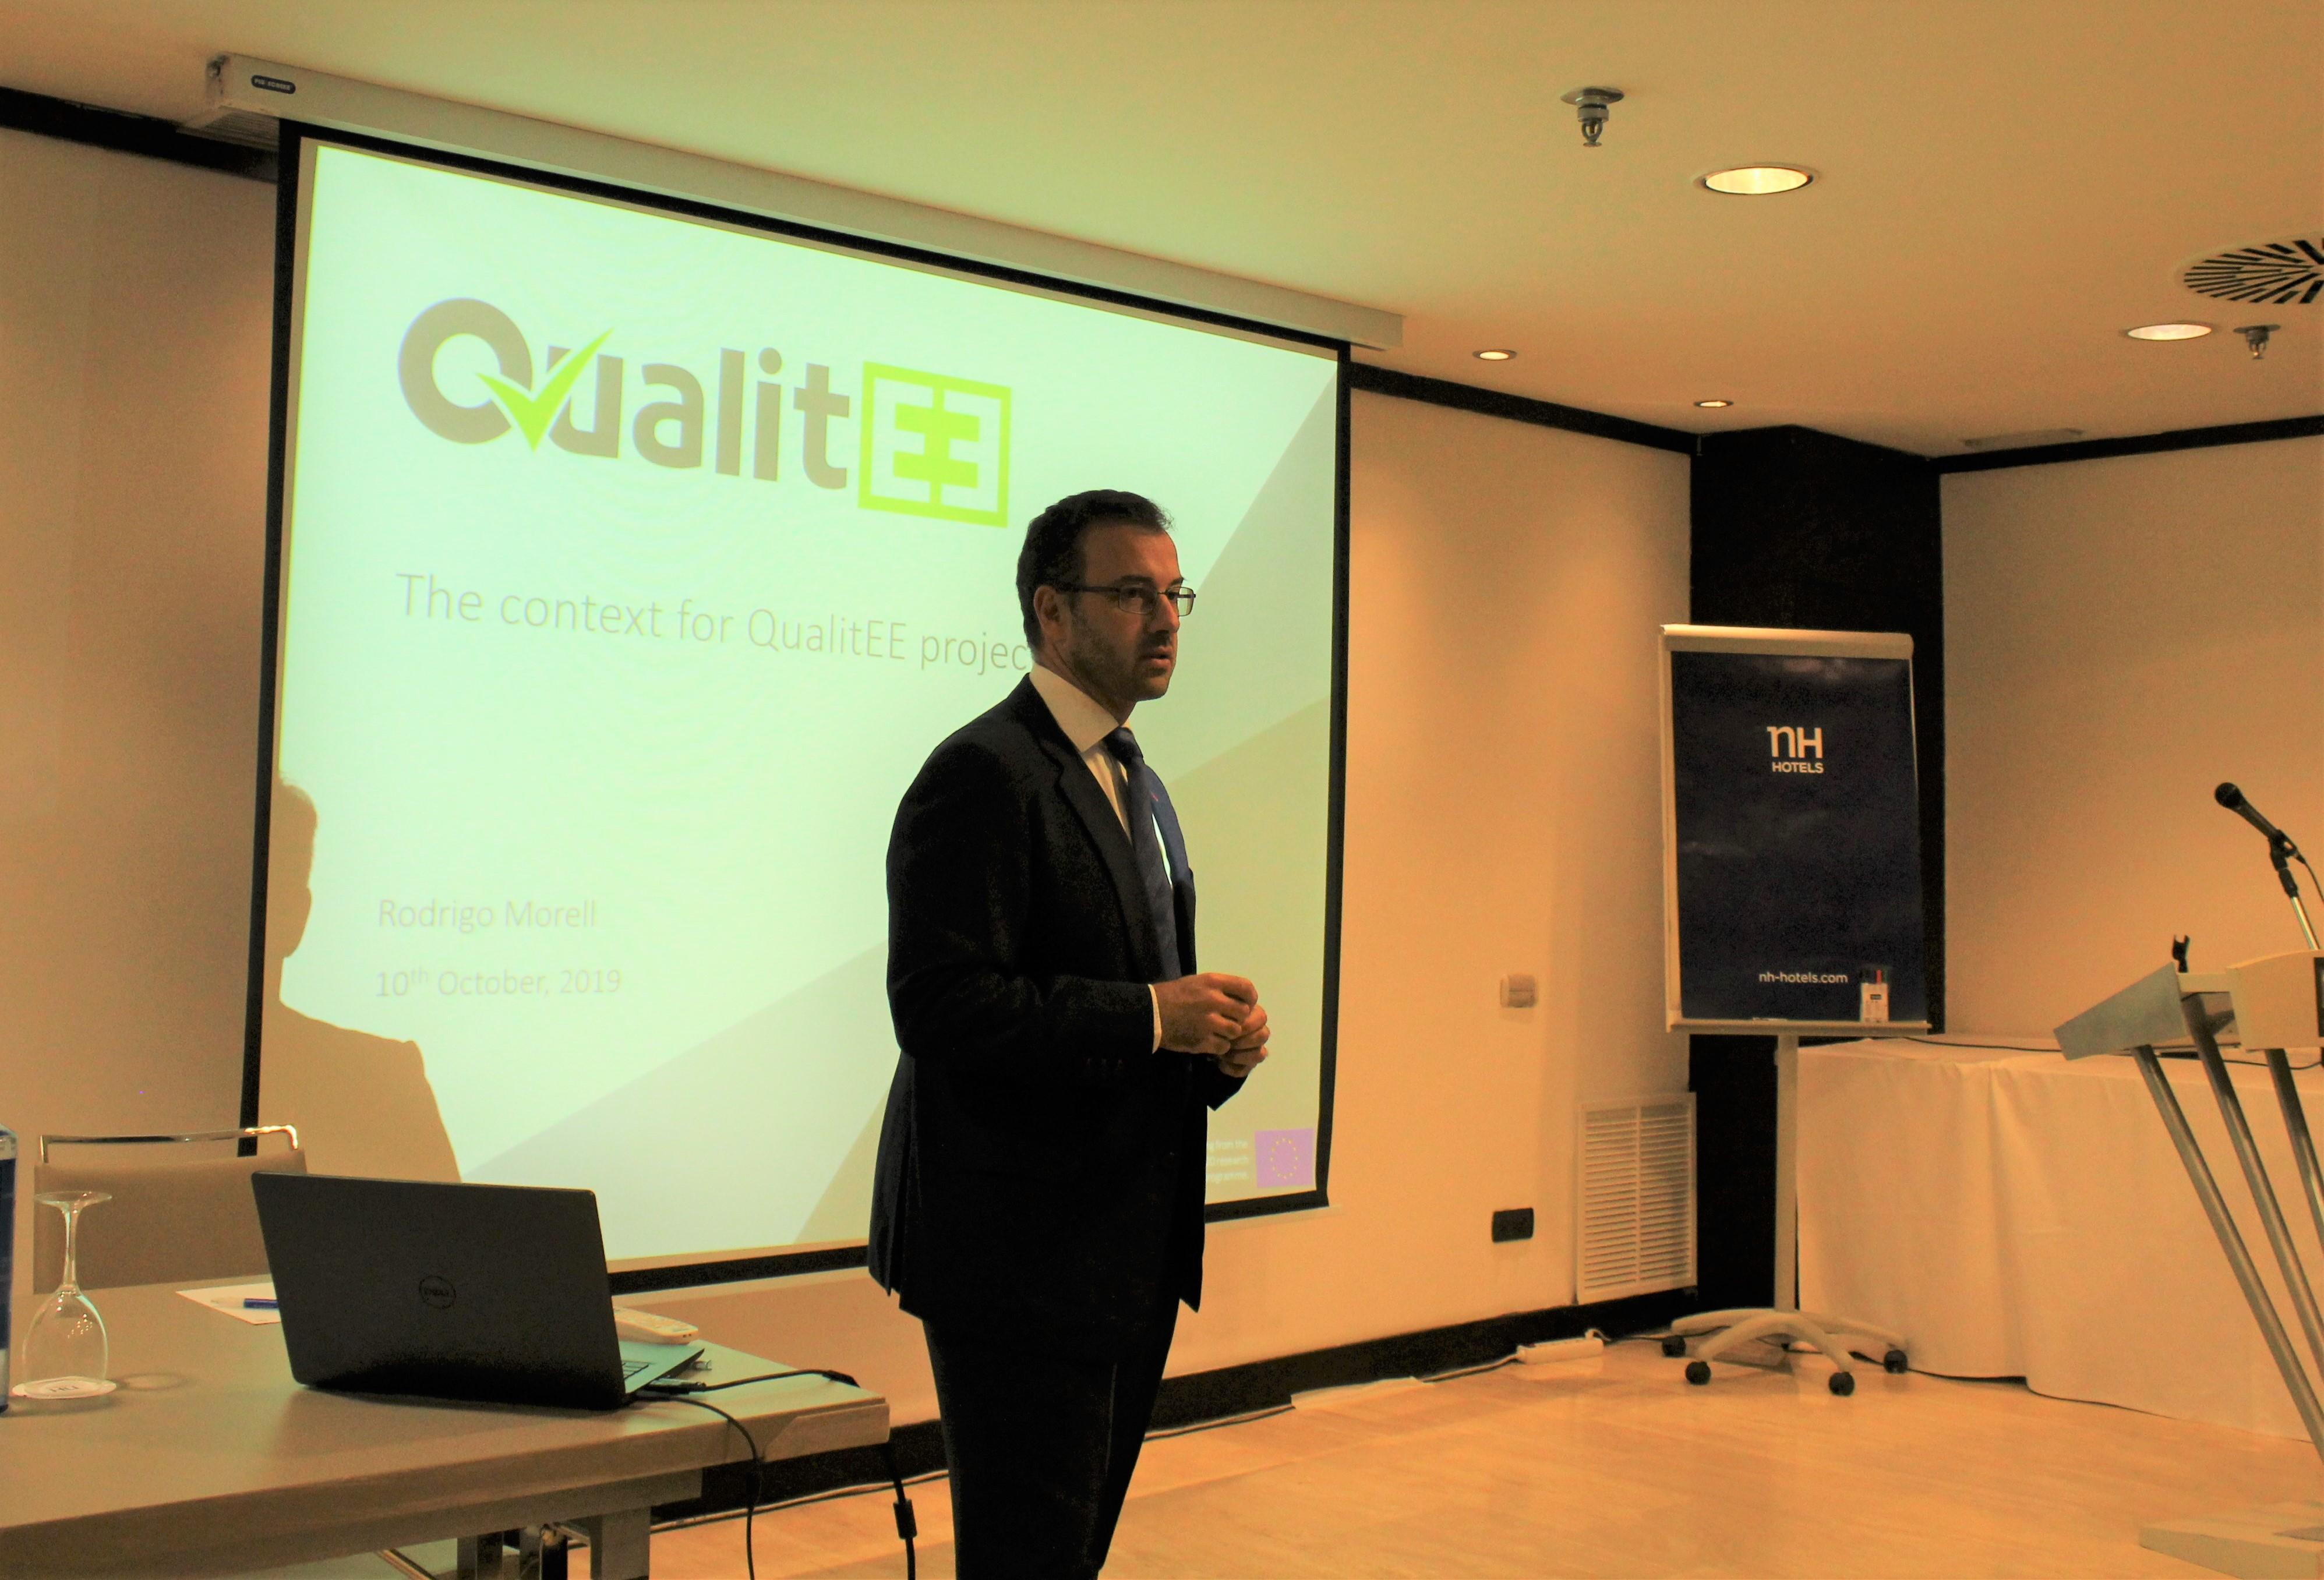 The Context for QualitEE project